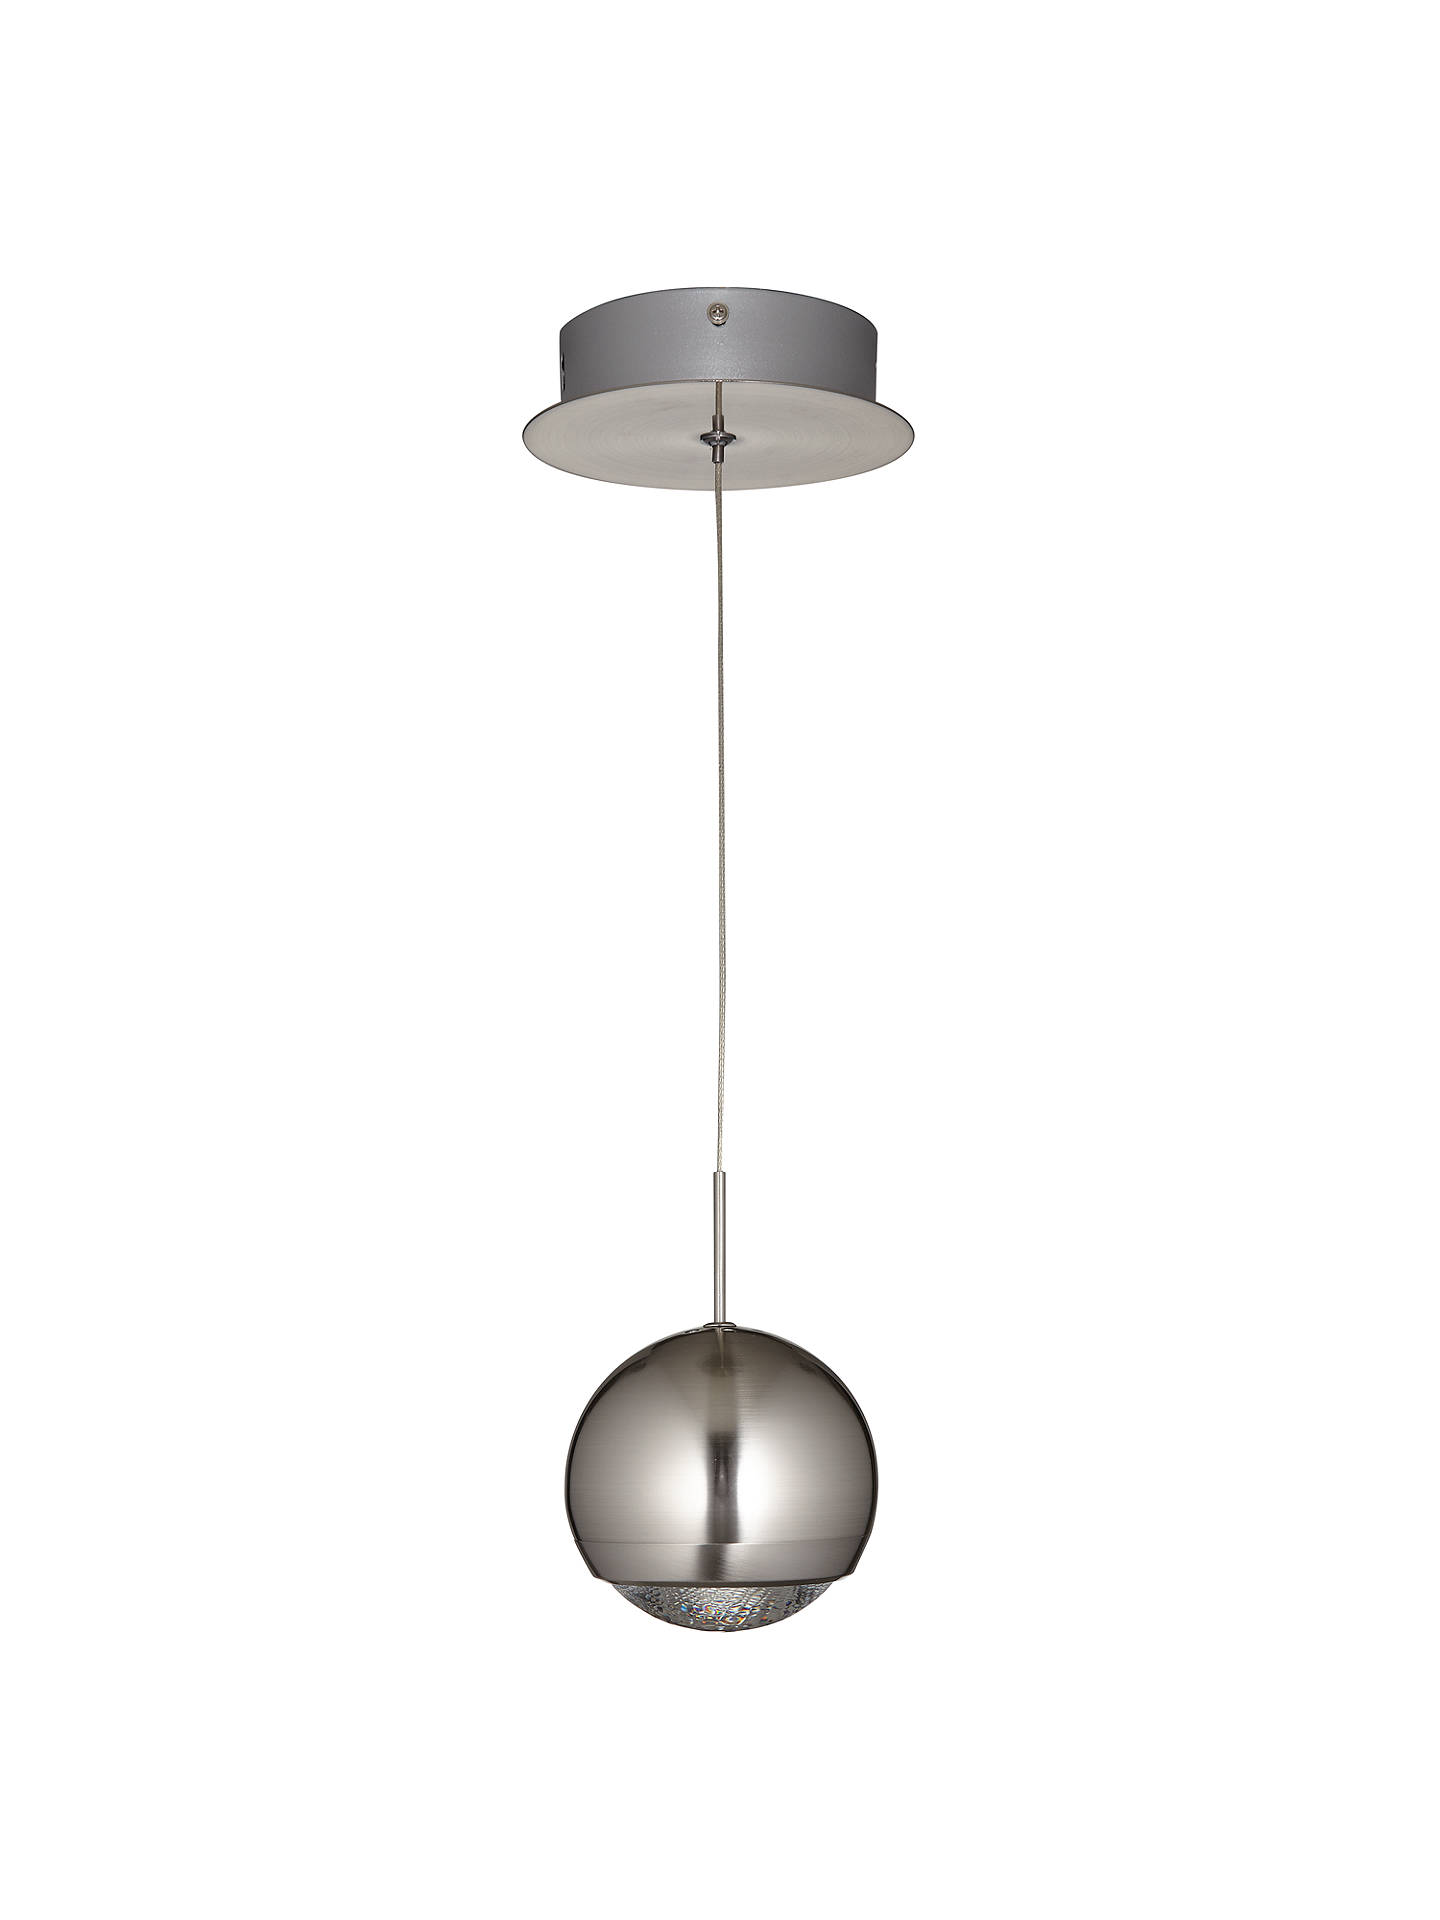 Buy John Lewis & Partners Lonn Headlight LED Ceiling Pendant Online at johnlewis.com